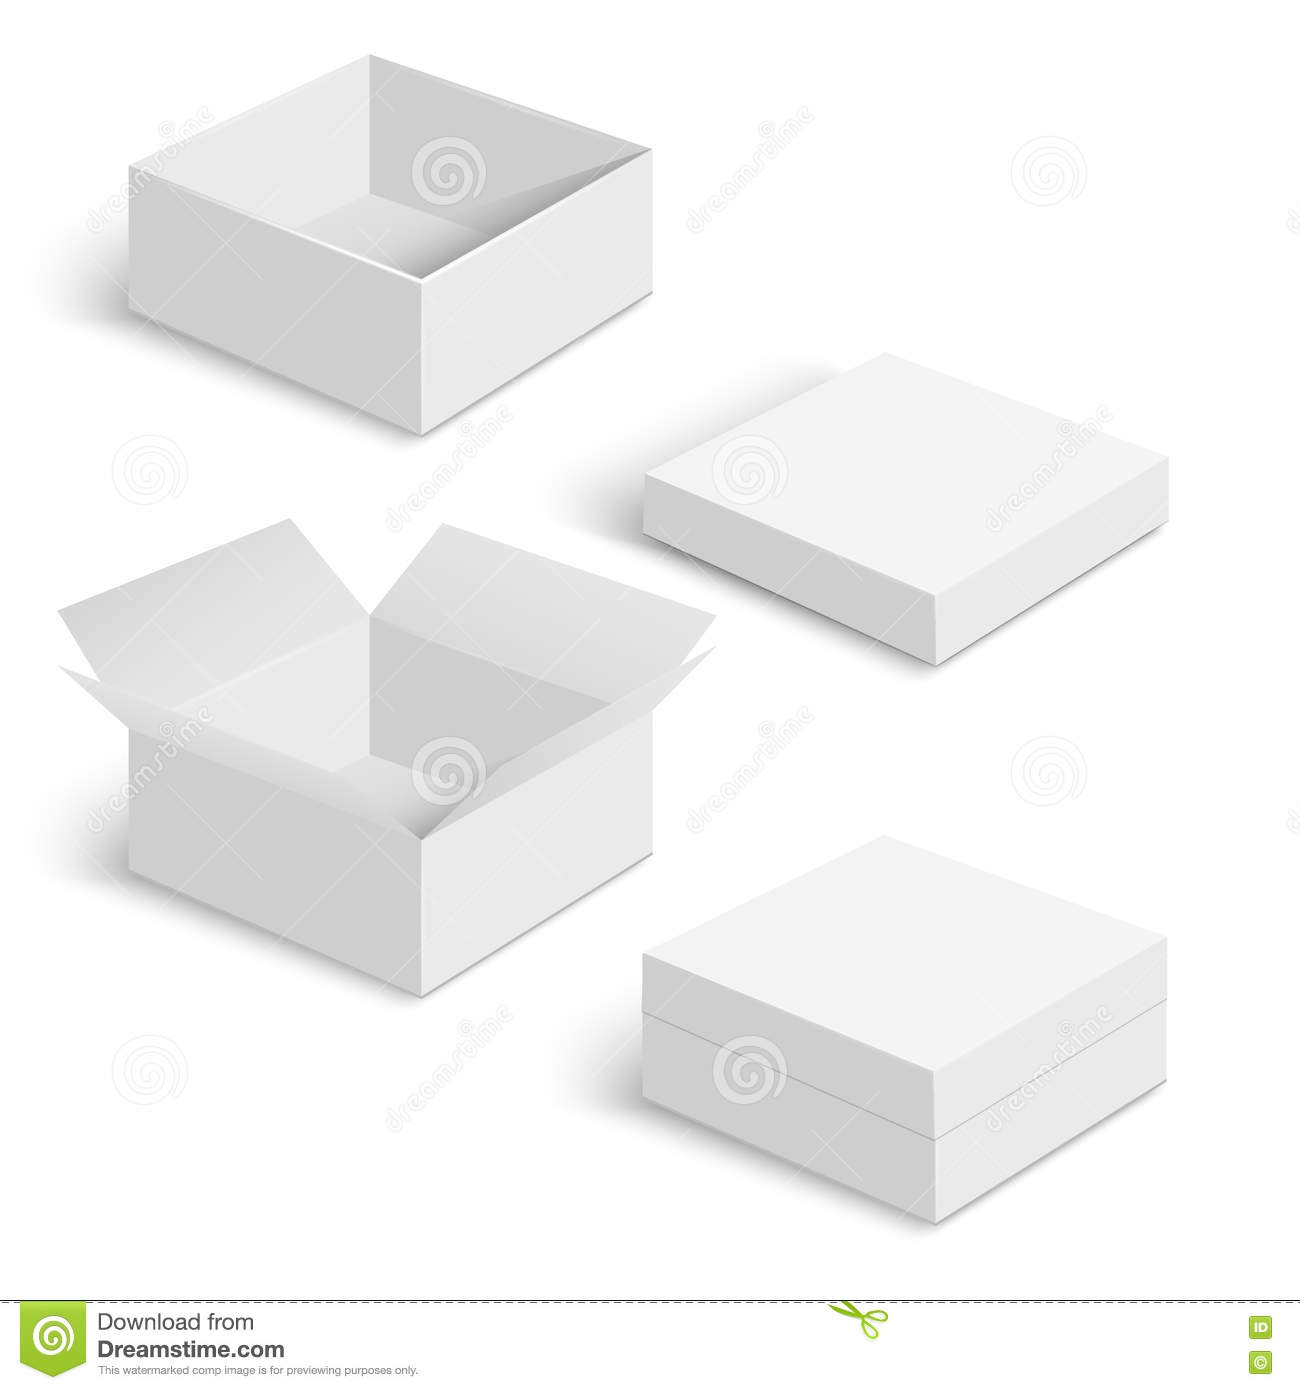 White Square Box Vector Templates Set Stock Vector Illustration Of